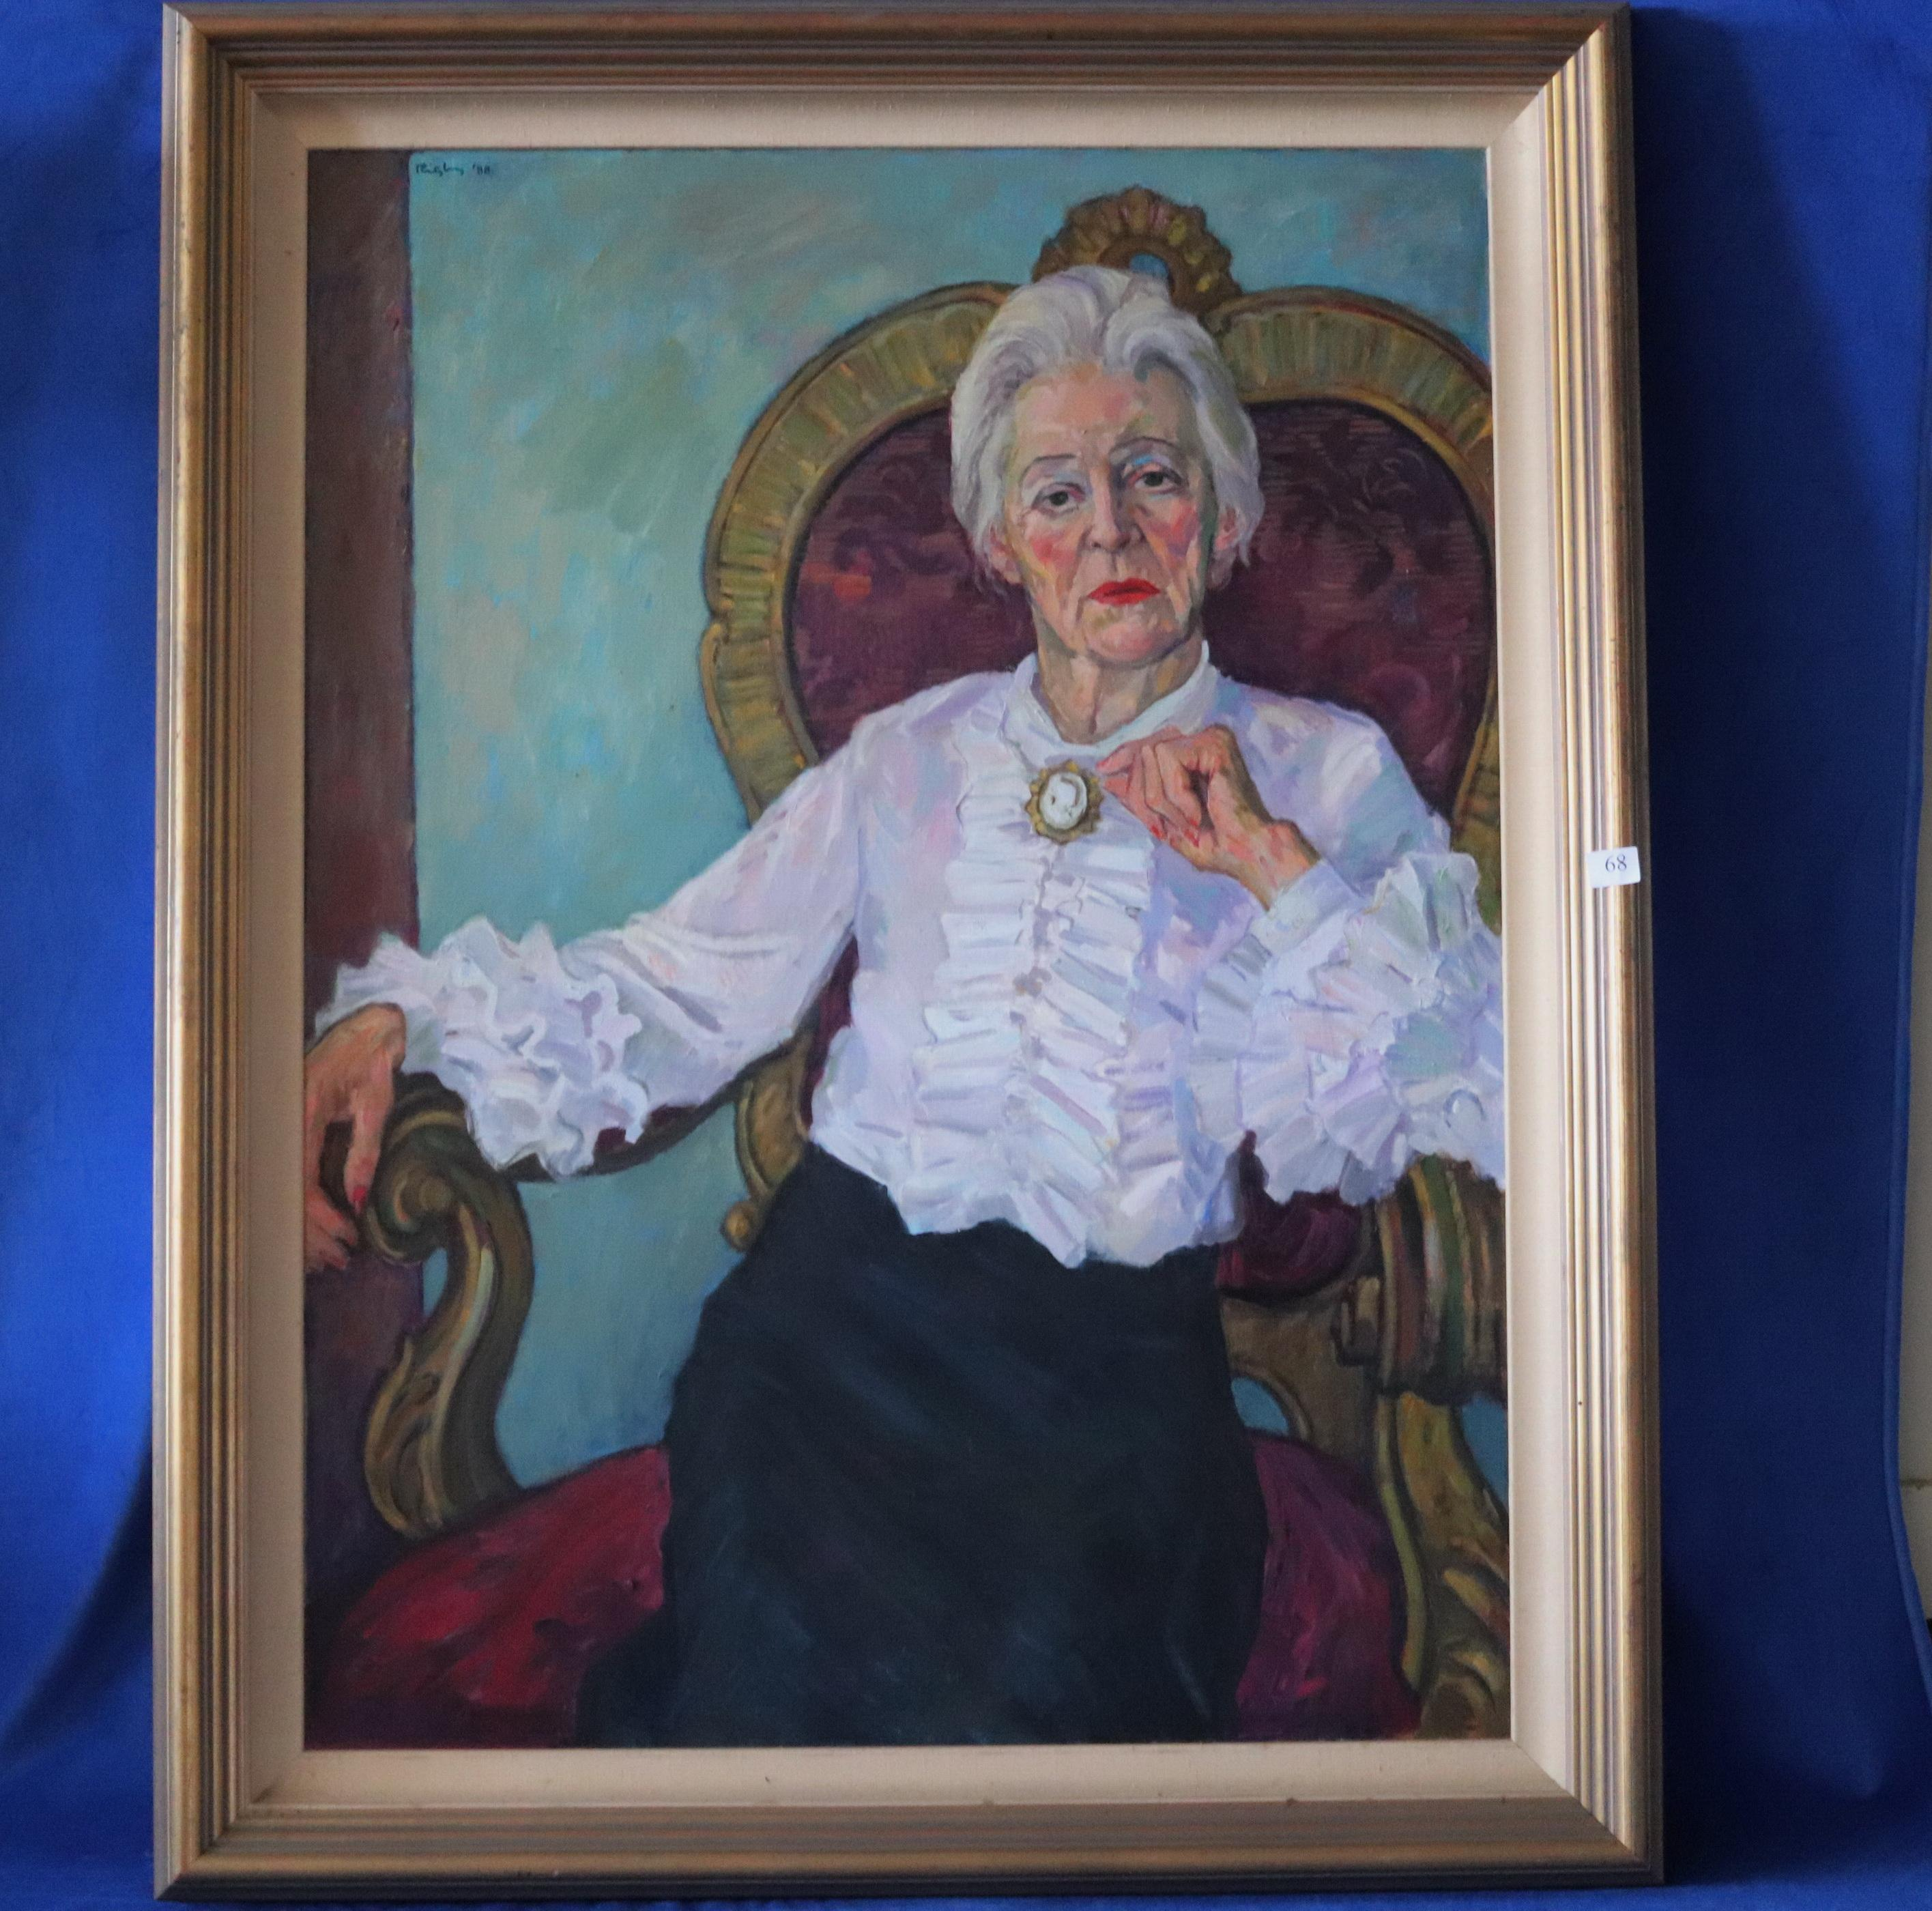 JOHN RIGBY (AUST,1922-2012) PORTRAIT OF CECELIA MCNALLY, OIL ON CANVAS, SIGNED AND DATED '88 UPPER LEFT, MEASURES 111CM X 82CM